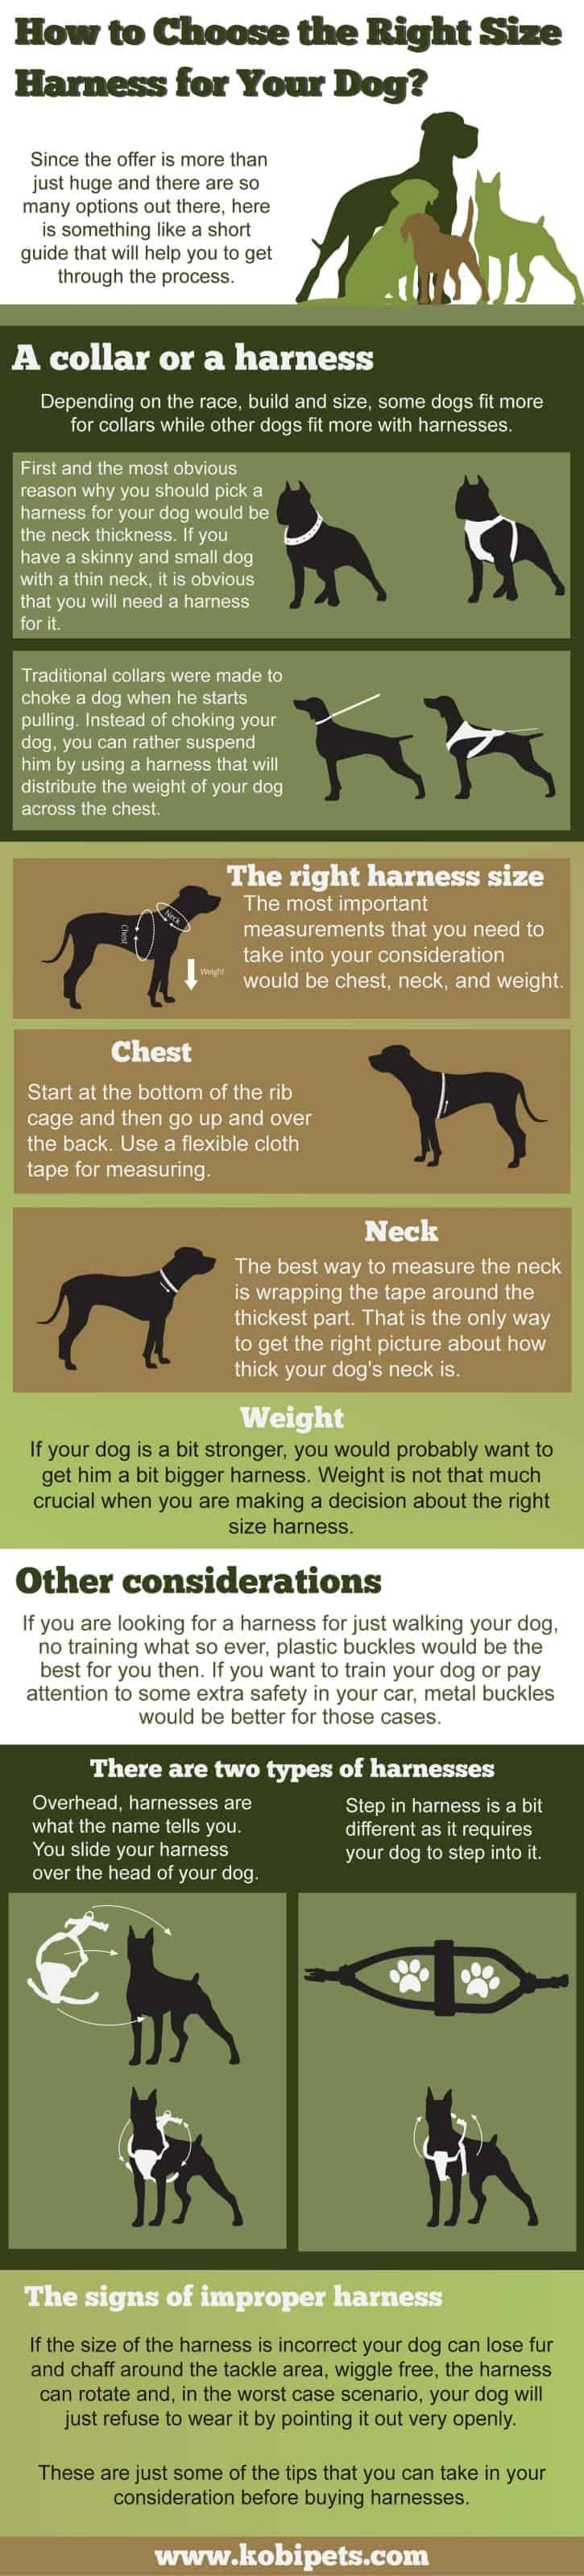 How-to-Choose-the-Right-Size-Harness-for-Your-Dog (infographic)